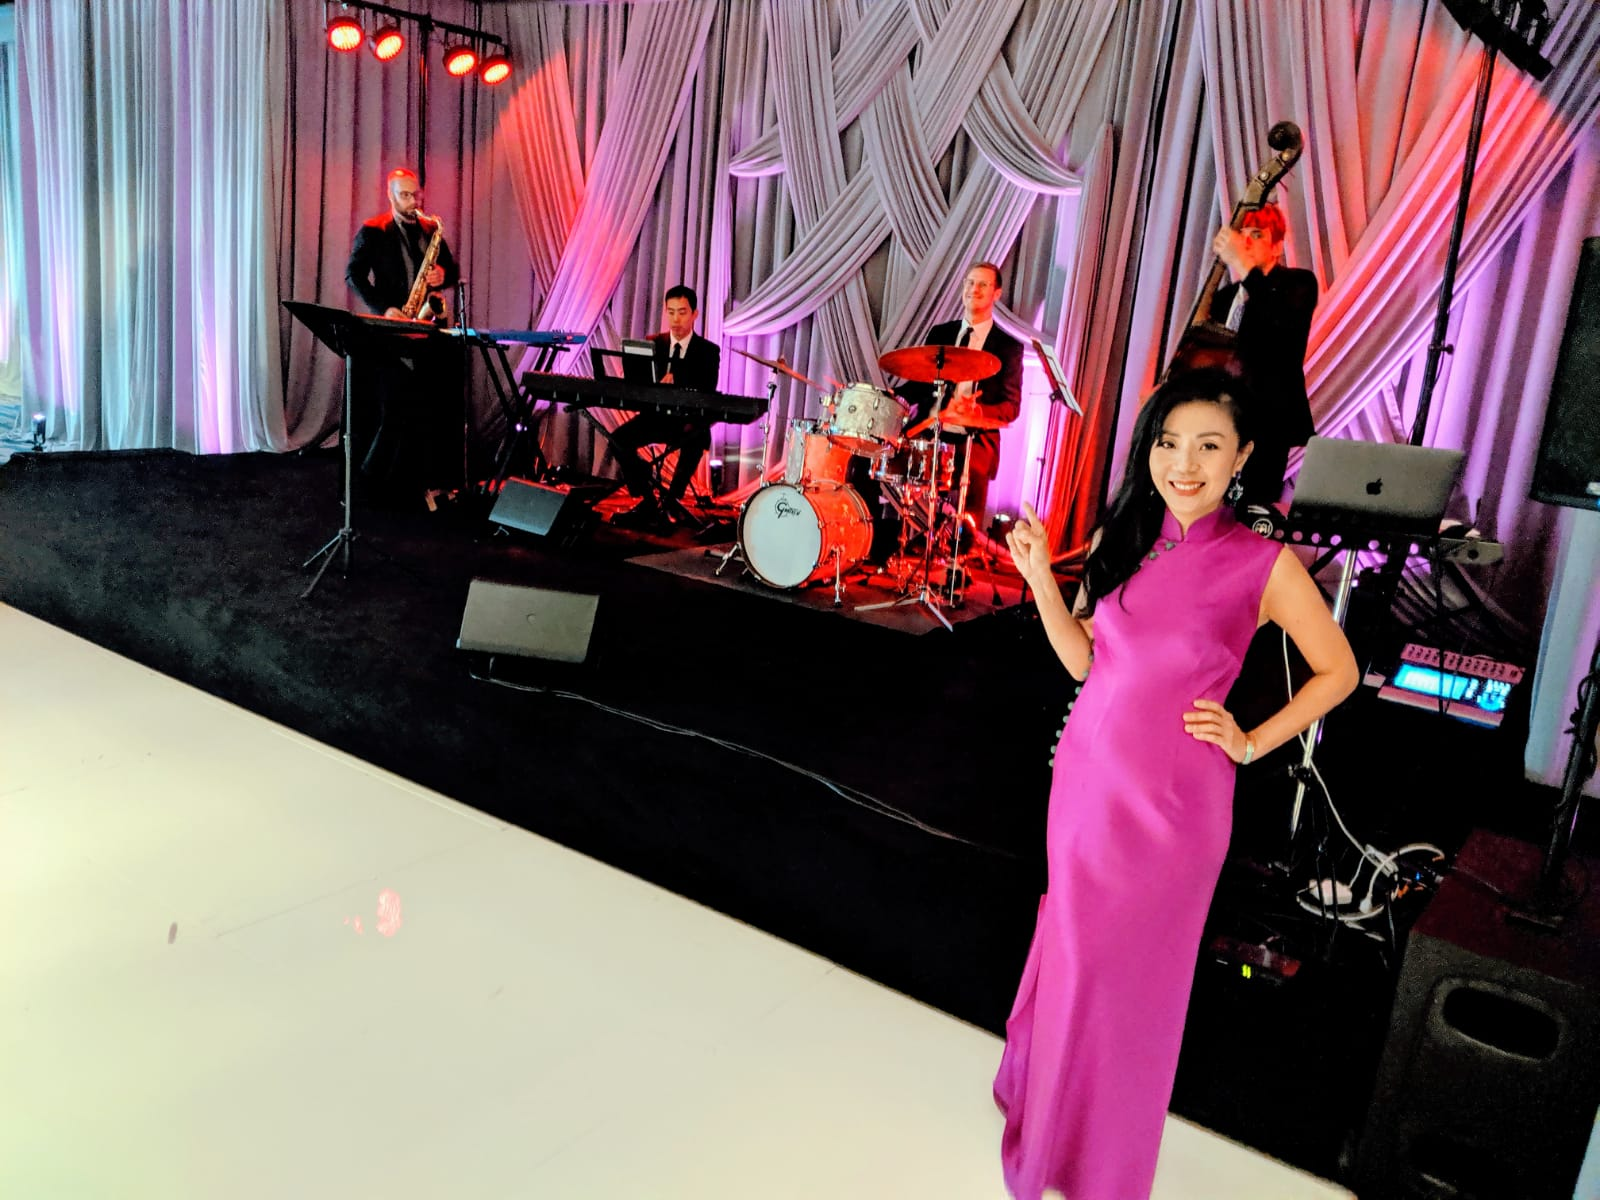 Live Band InterContinental Los Angeles Downtown